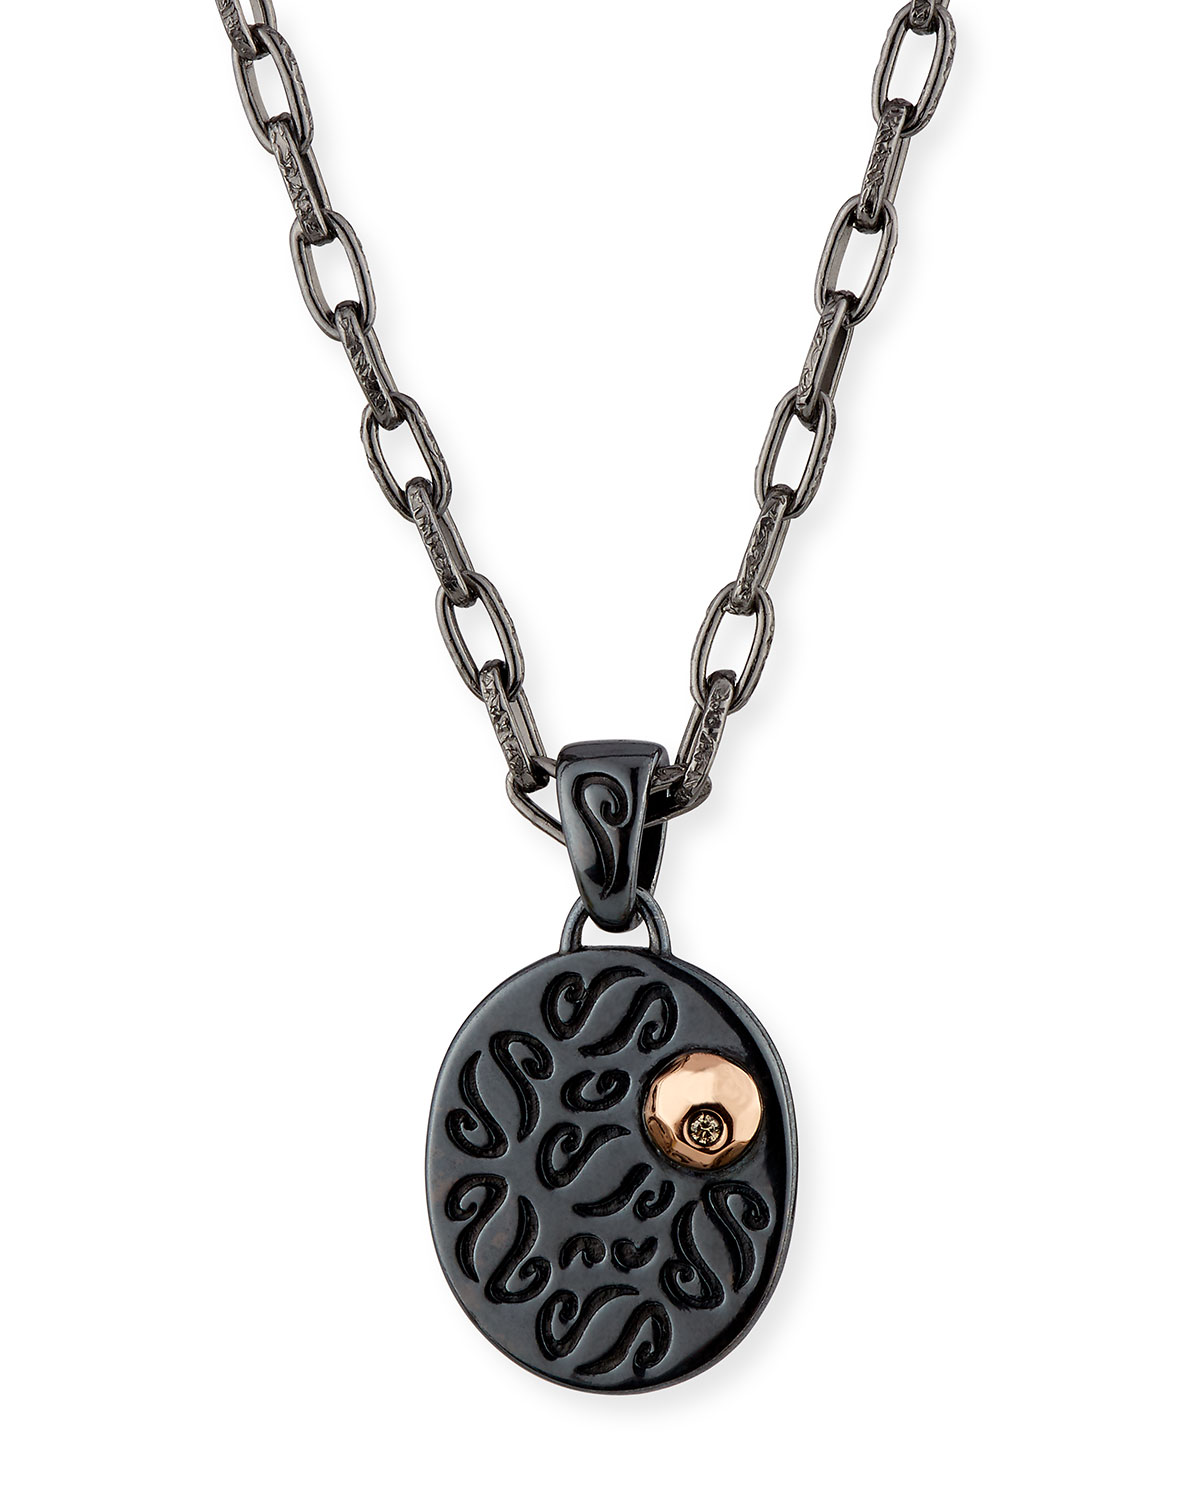 Marco Dal Maso Ara Burnished Silver Pendant Necklace with 18K Rose Gold & Champagne Diamond QLVmxgSScw